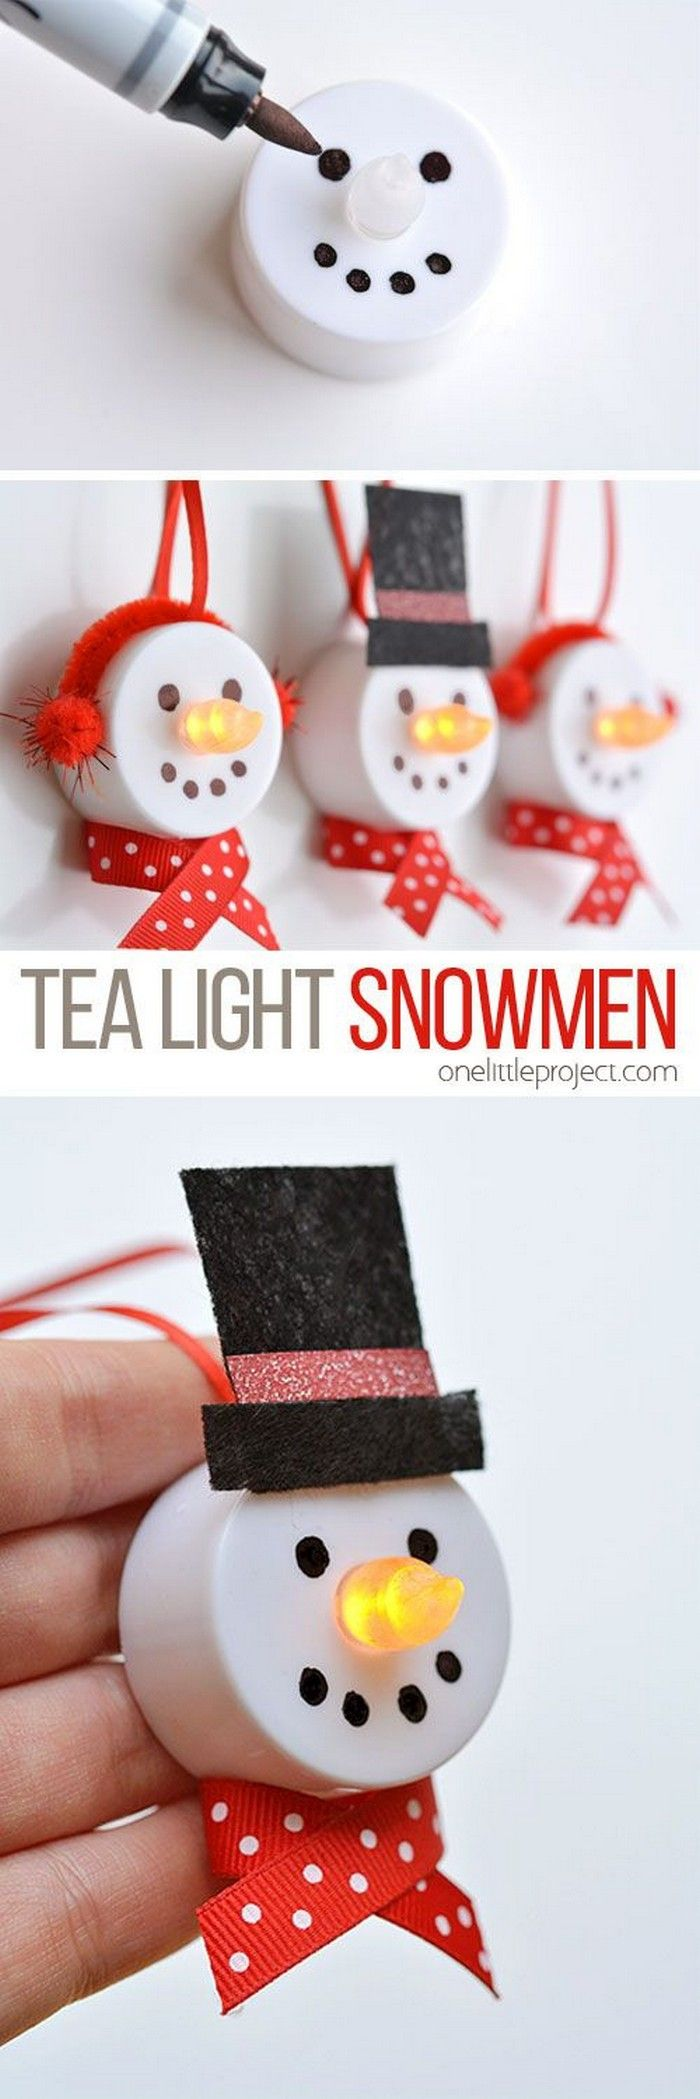 Tea Light Snowman Ornaments Keeping In Mind The Importance Of Easy Christmas Crafts I Have Made The Collecti Christmas Crafts Diy Tea Light Snowman Xmas Crafts